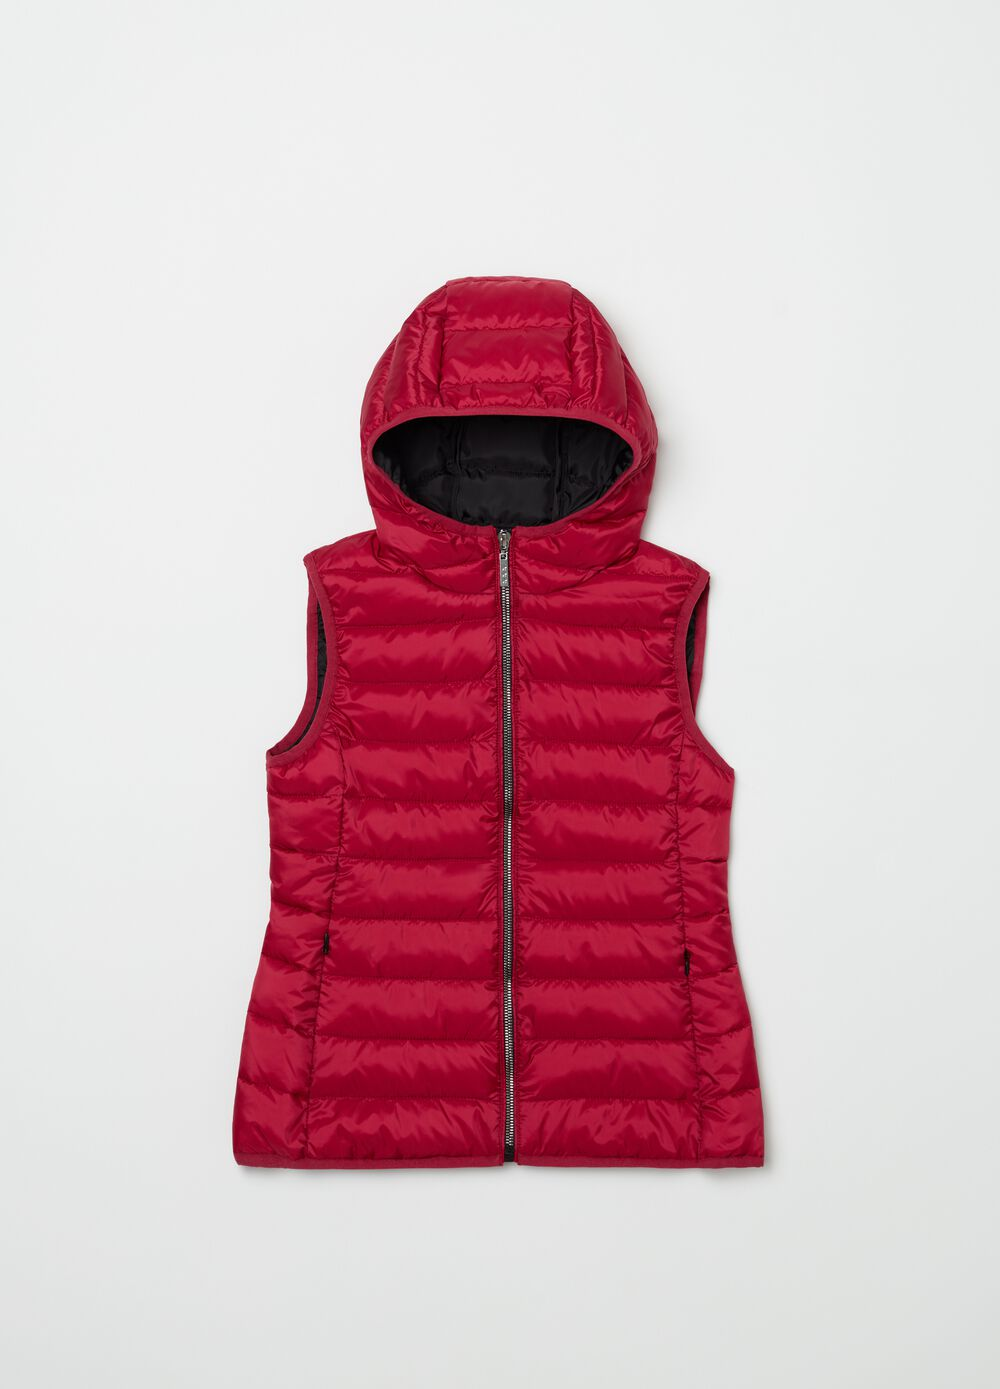 Padded gilet with hood, pockets and zip